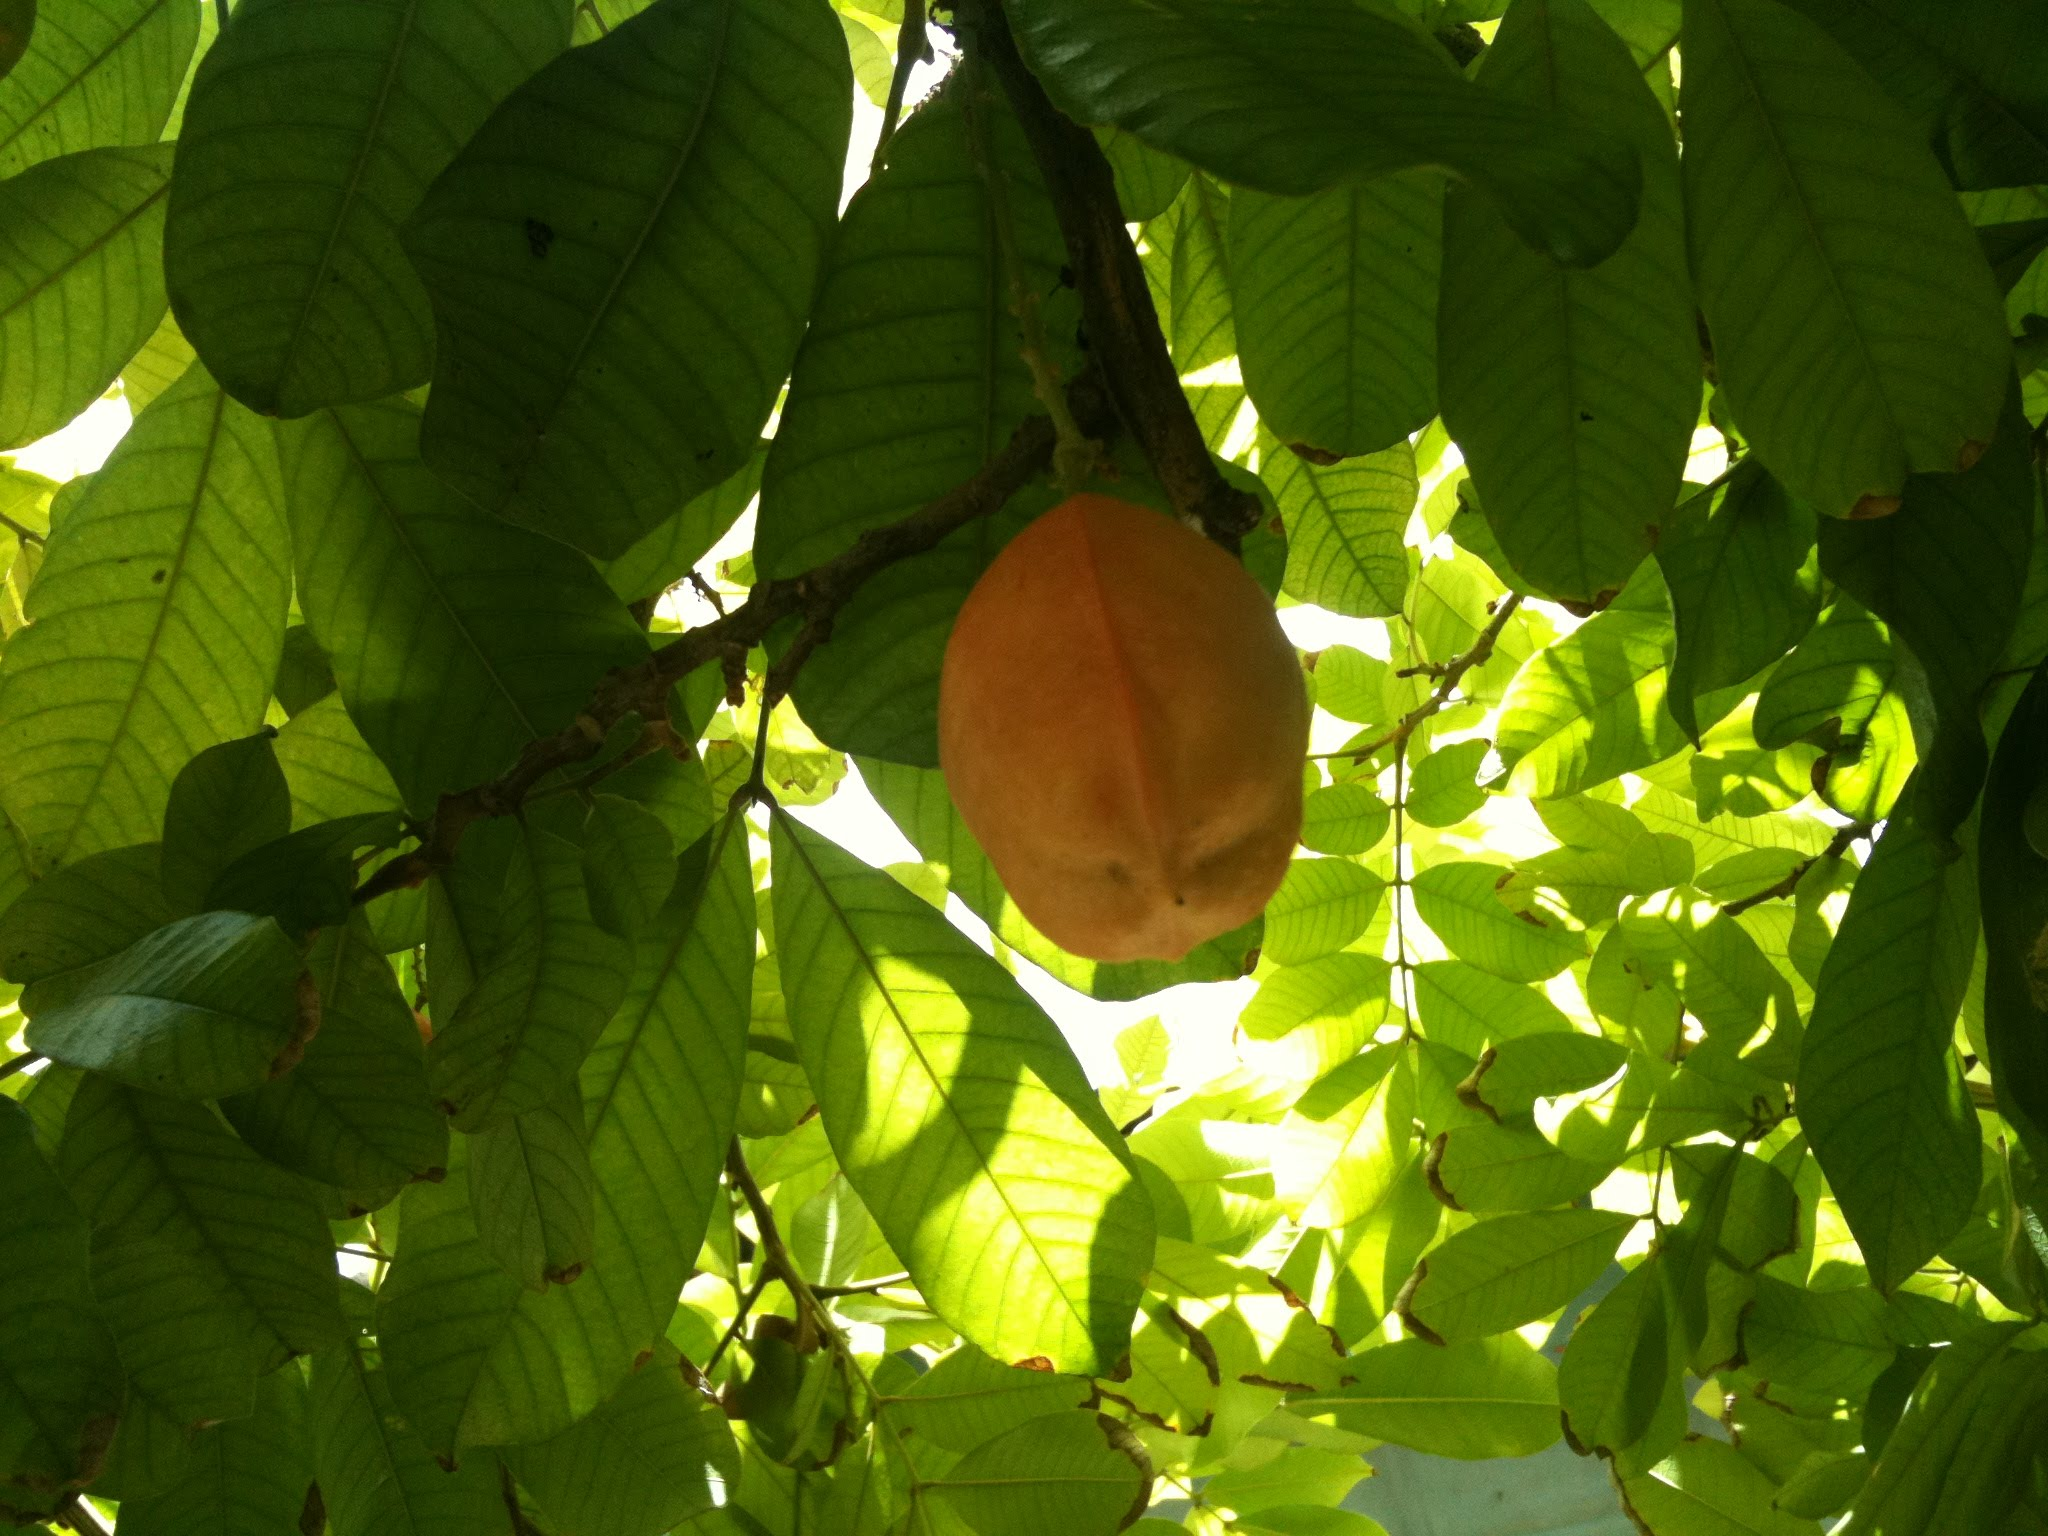 An orange grows ripe on the underside of a brilliant green canopy